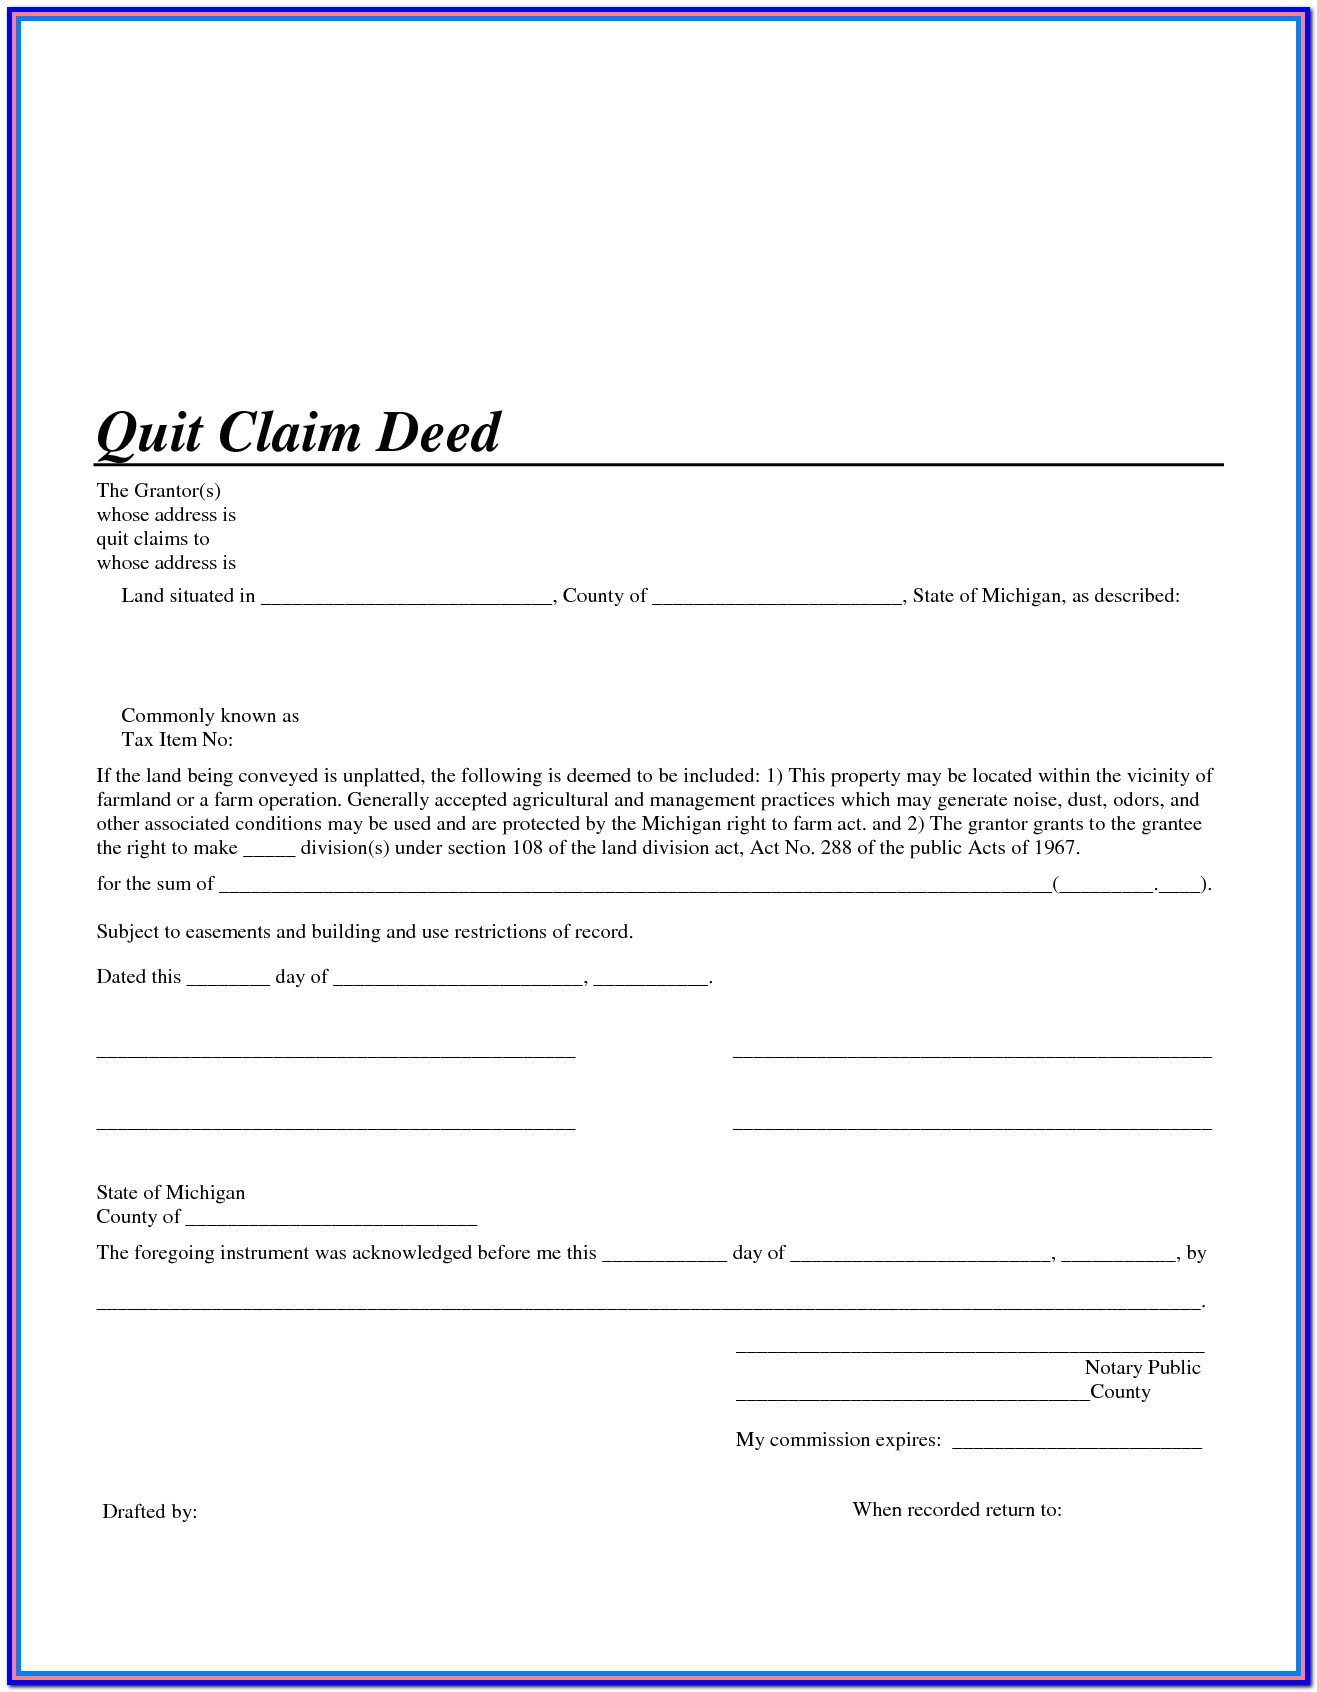 Quit Claim Deed Template Oklahoma